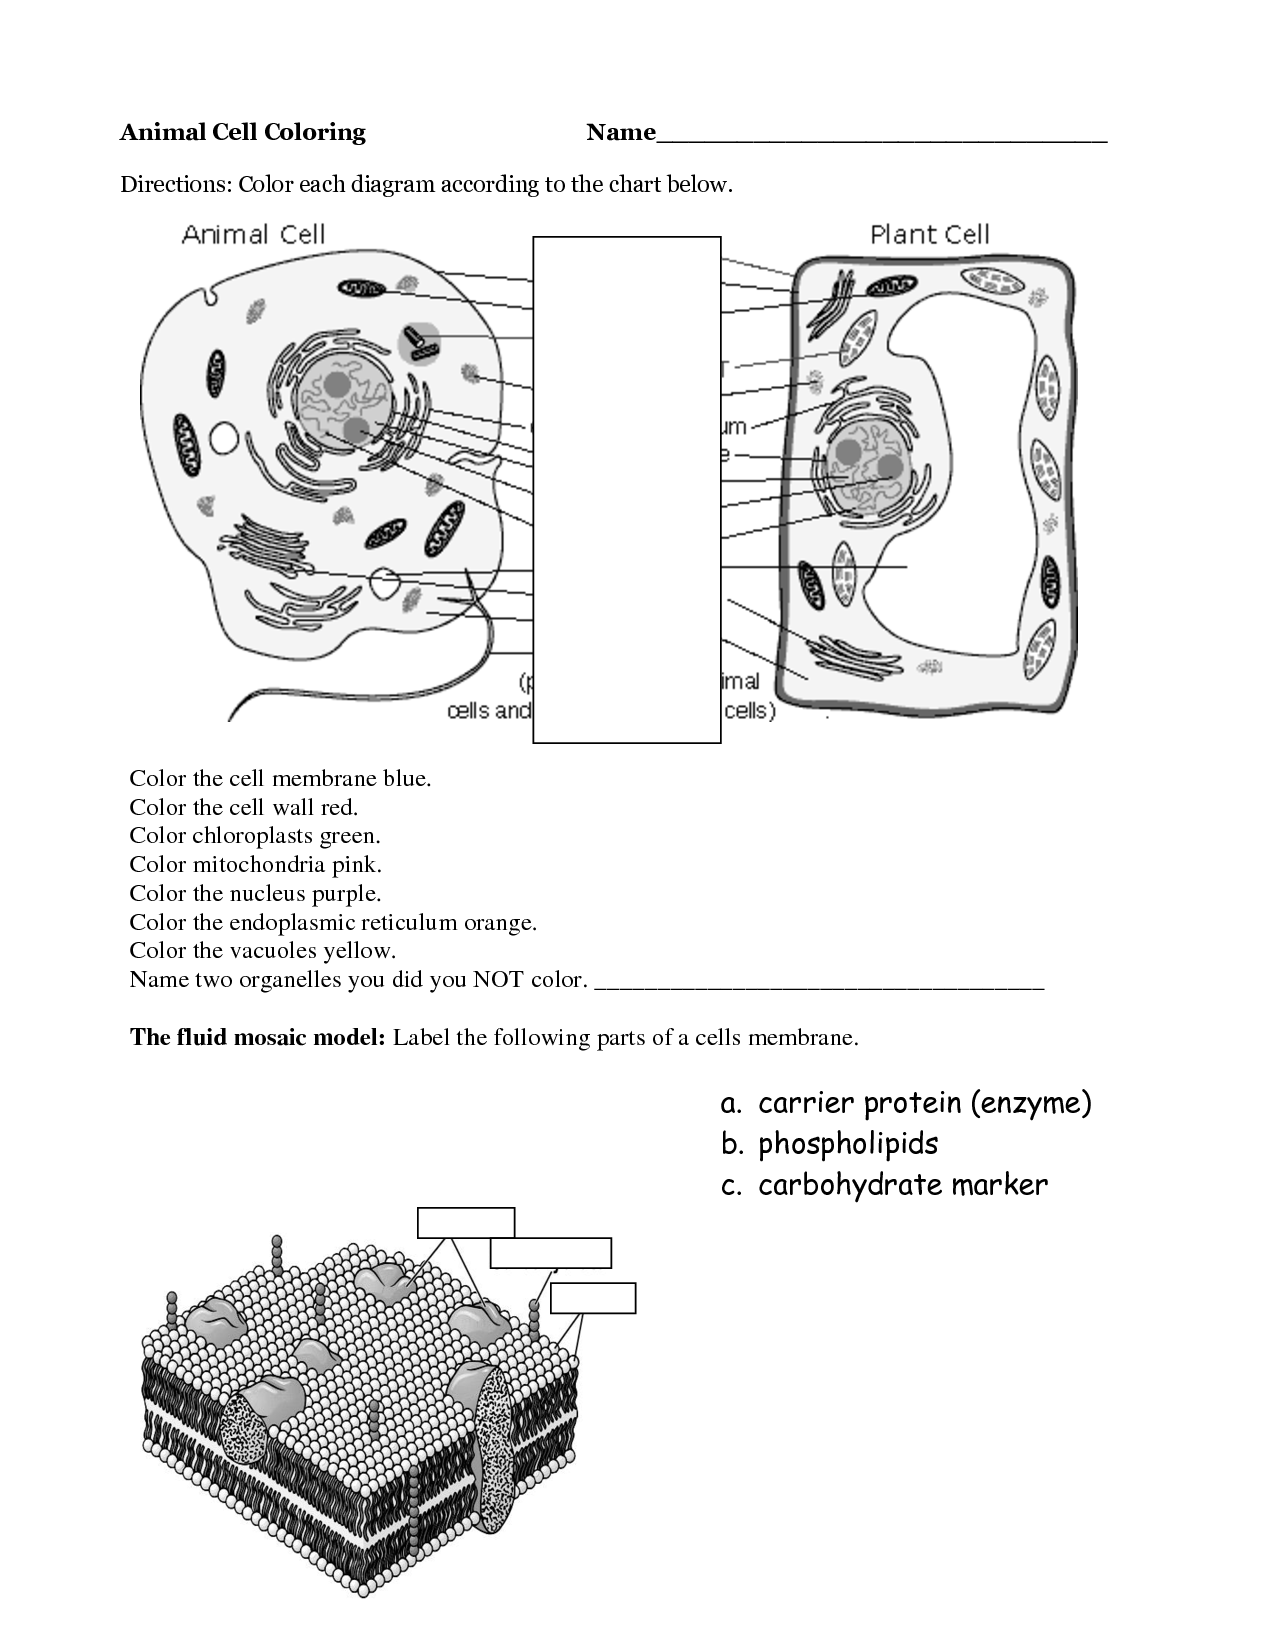 worksheet Animal And Plant Cells Worksheet phospholipids proteins and cholesterol first compartment formed plant az